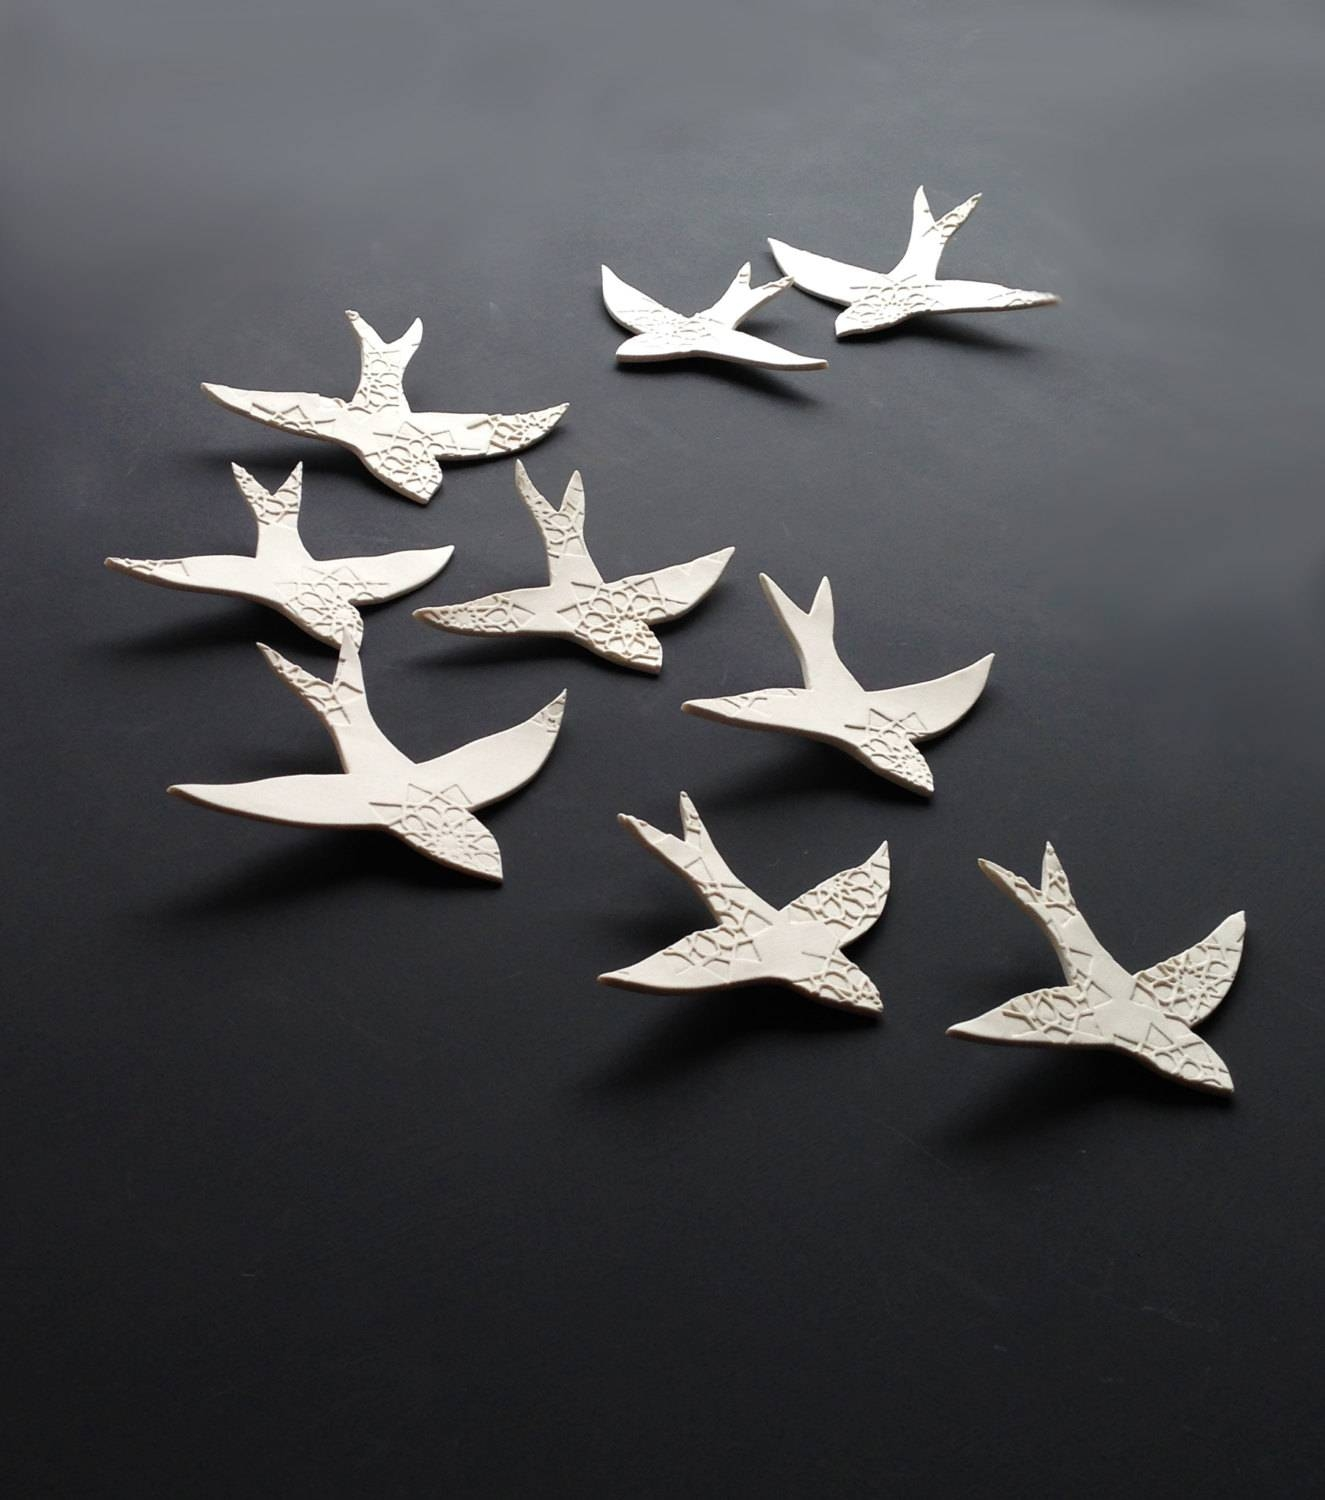 Porcelain 3D Large Wall Art Set Swallows Over Morocco 9 Birds Pertaining To Most Current Birds In Flight Metal Wall Art (View 17 of 30)